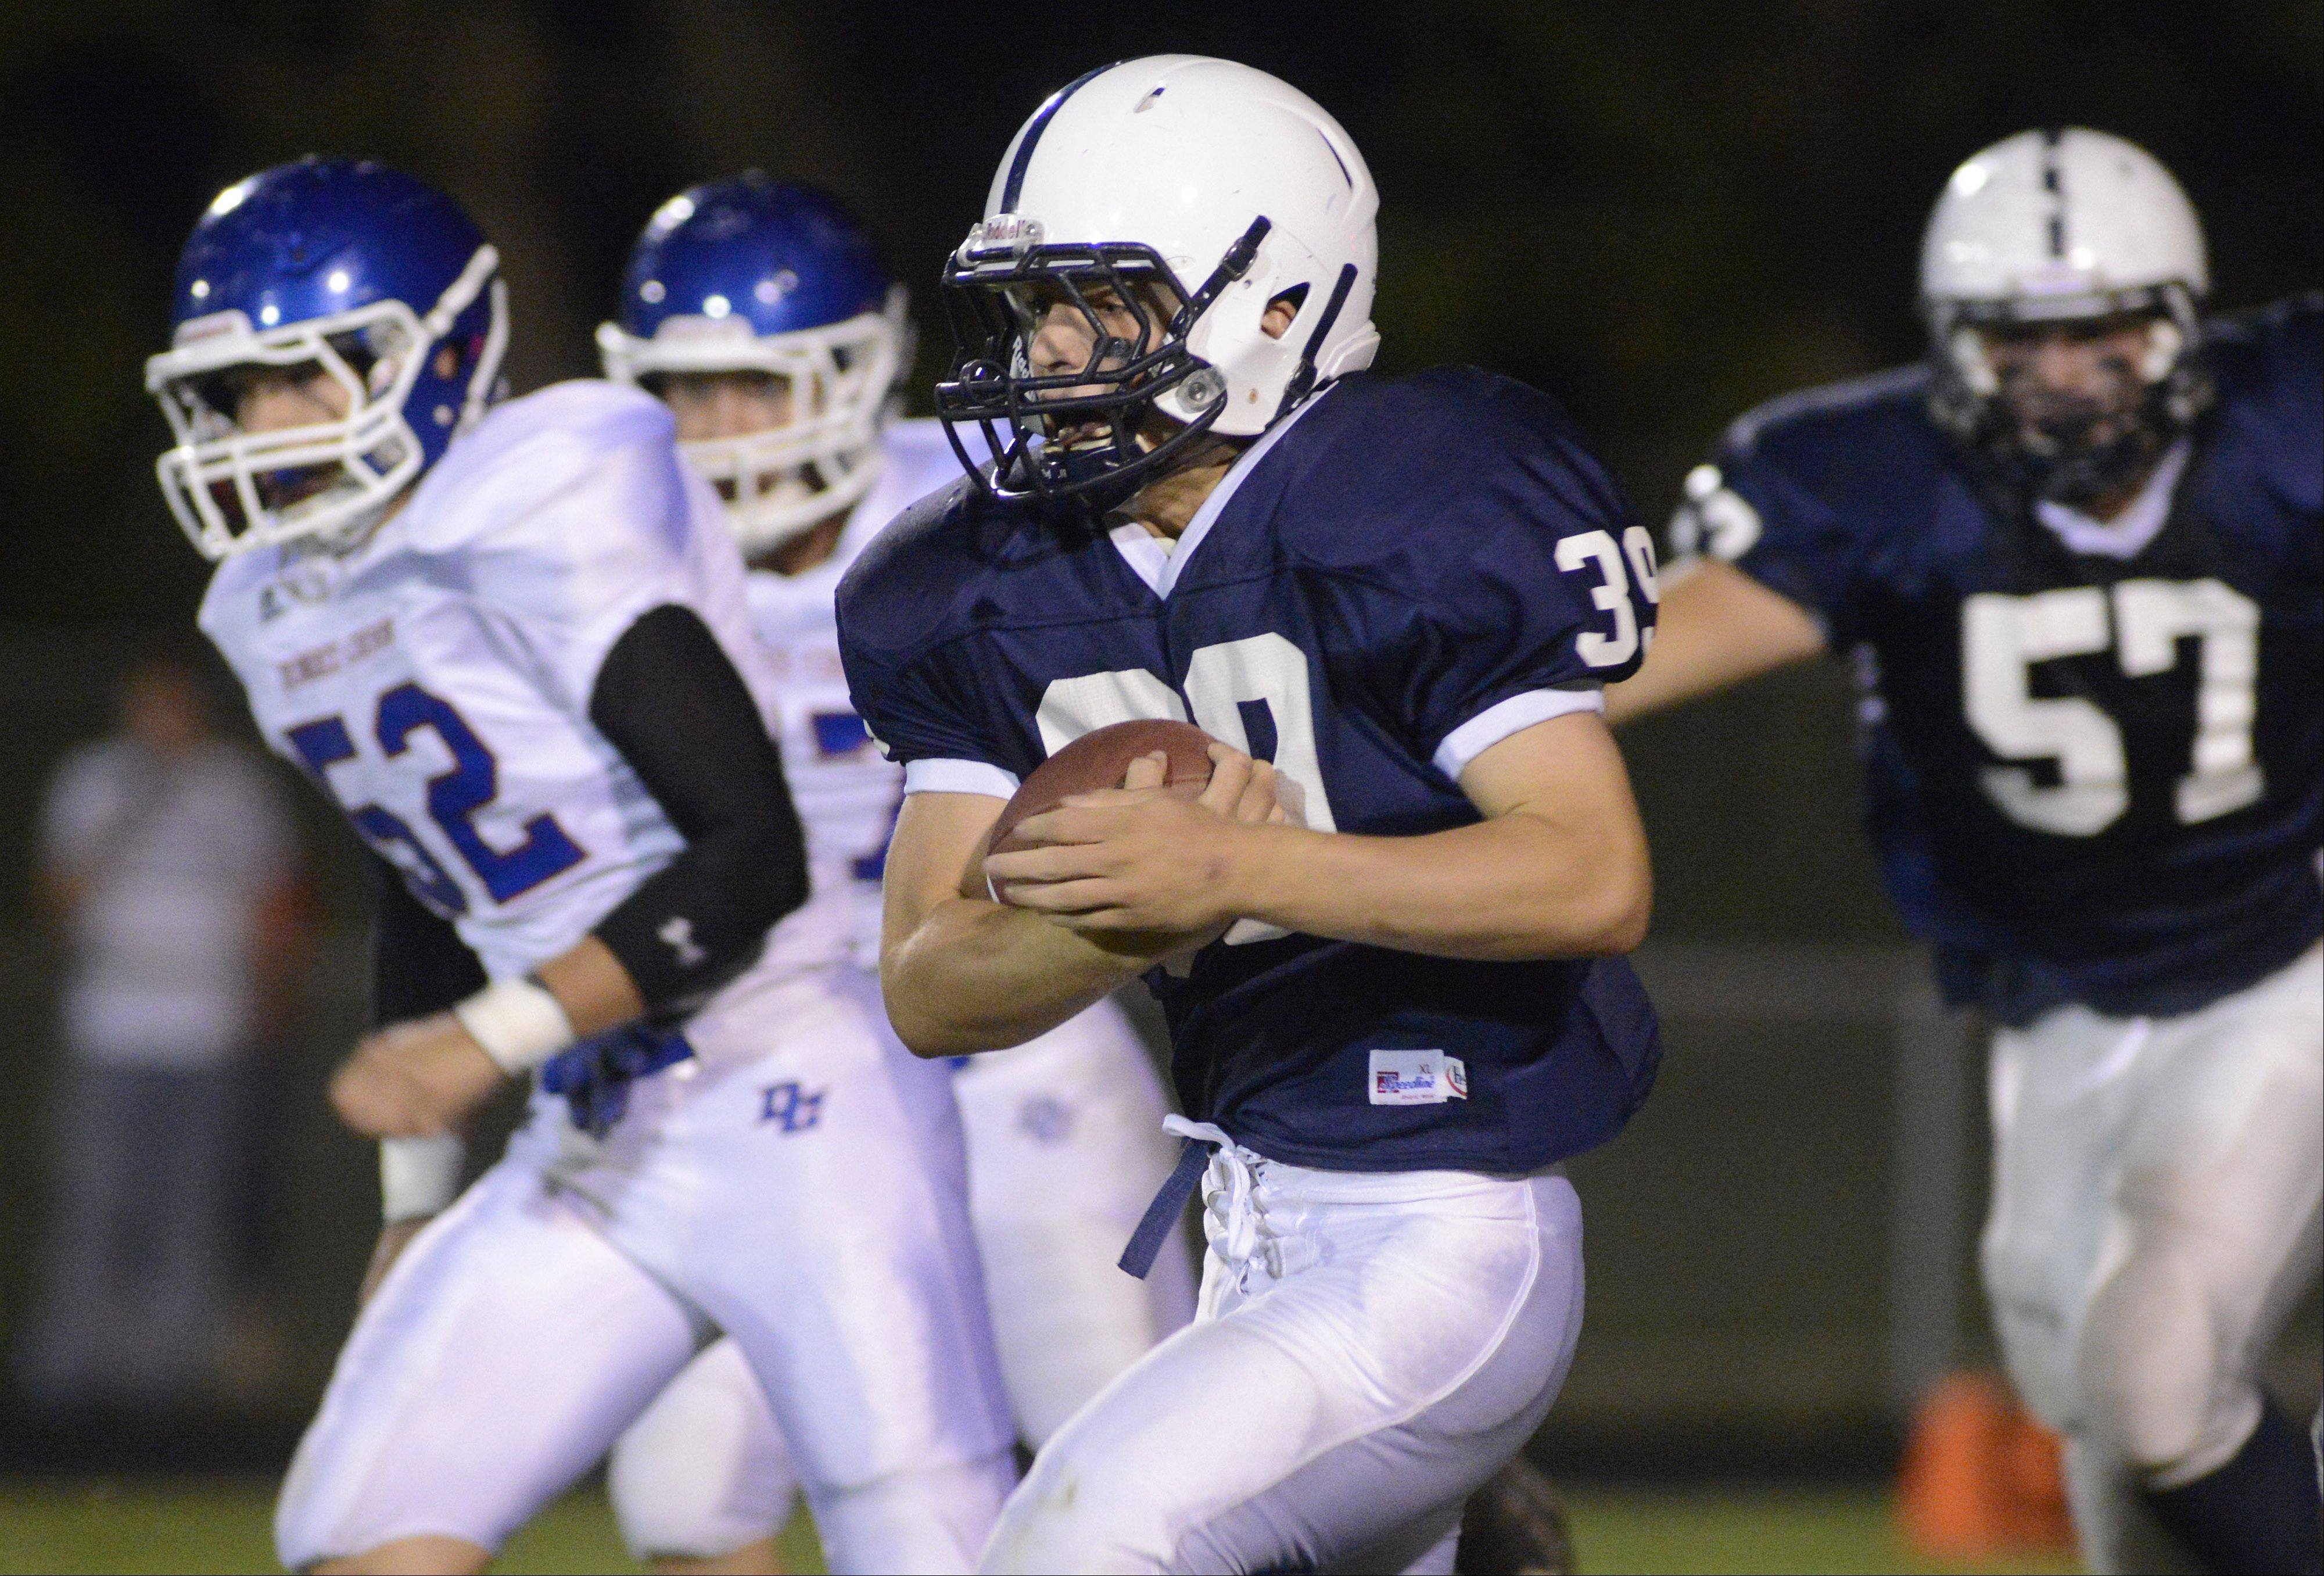 Cary-Grove�s Tyler Pennington makes his way down the field in the first quarter against Dundee-Crown on Friday in Cary.